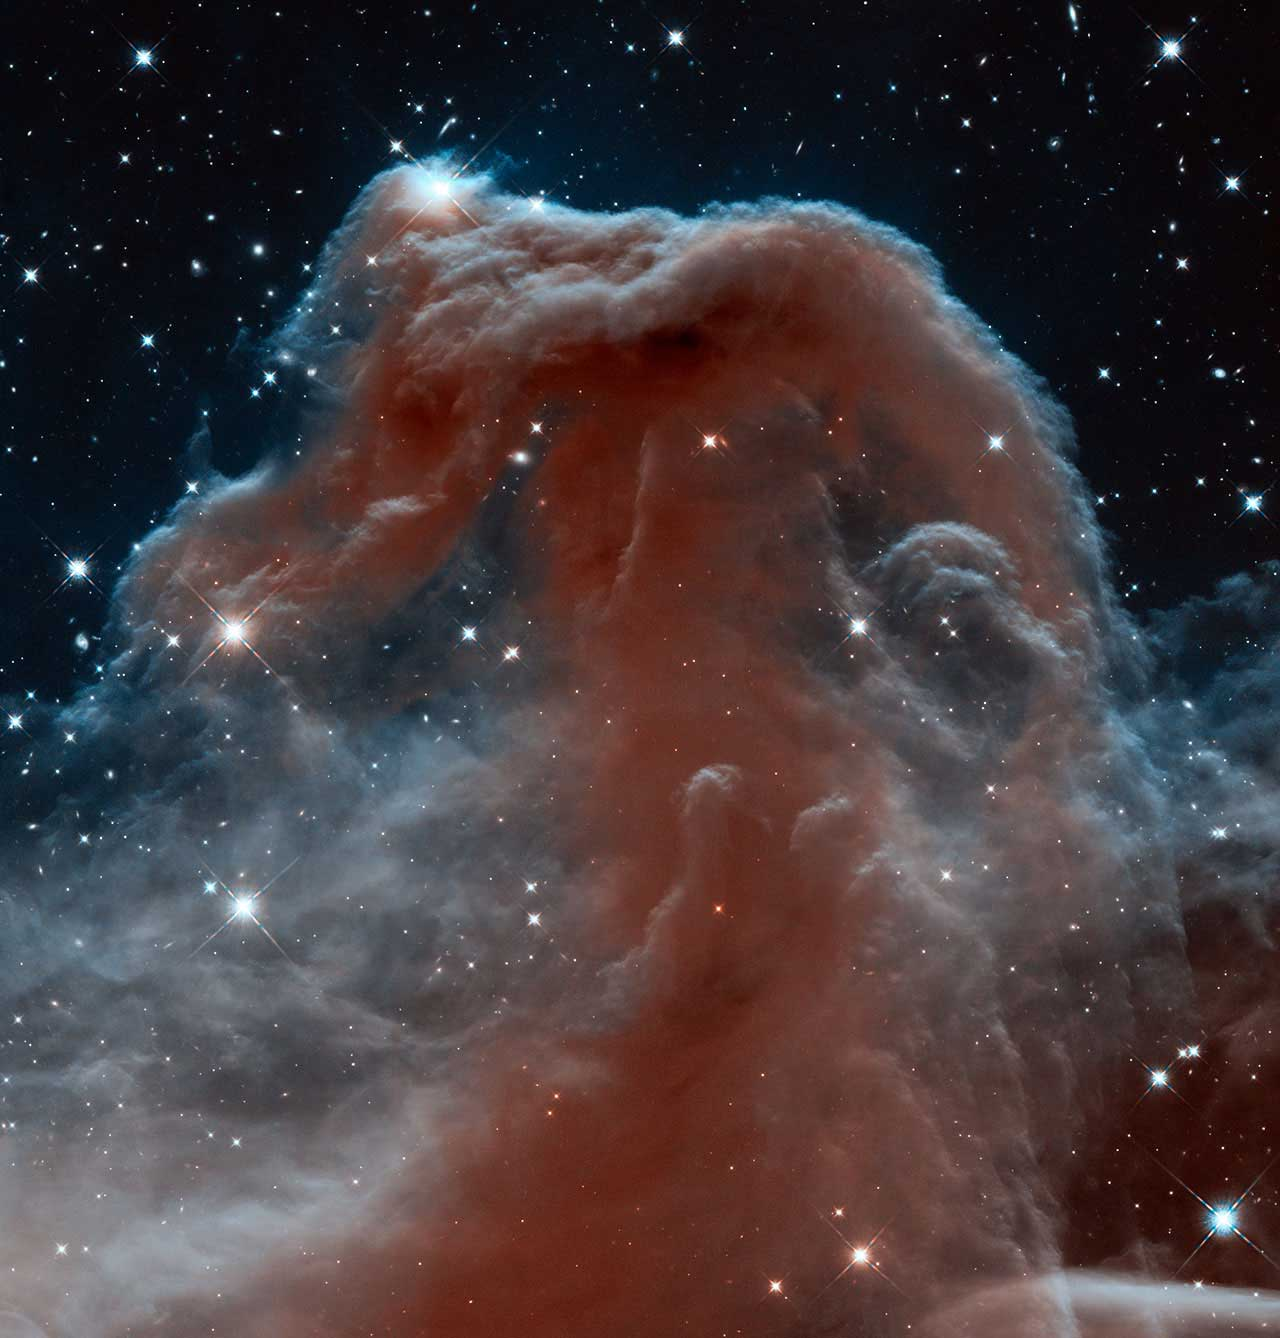 <strong>Horsehead Nebula</strong>:                                                                      Since its launch in April 1990, Hubble has observed and imaged the Horsehead Nebula many times. This new image, released in 2013, shows part of the sky in the constellation of Orion (The Hunter). The nebula, otherwise known as Barnard 33 is shown in infrared light, which has longer wavelengths than visible light and can pierce through the dusty material that usually obscures the nebula's inner regions.                                                                       <i>Image released on April 19, 2013</i>